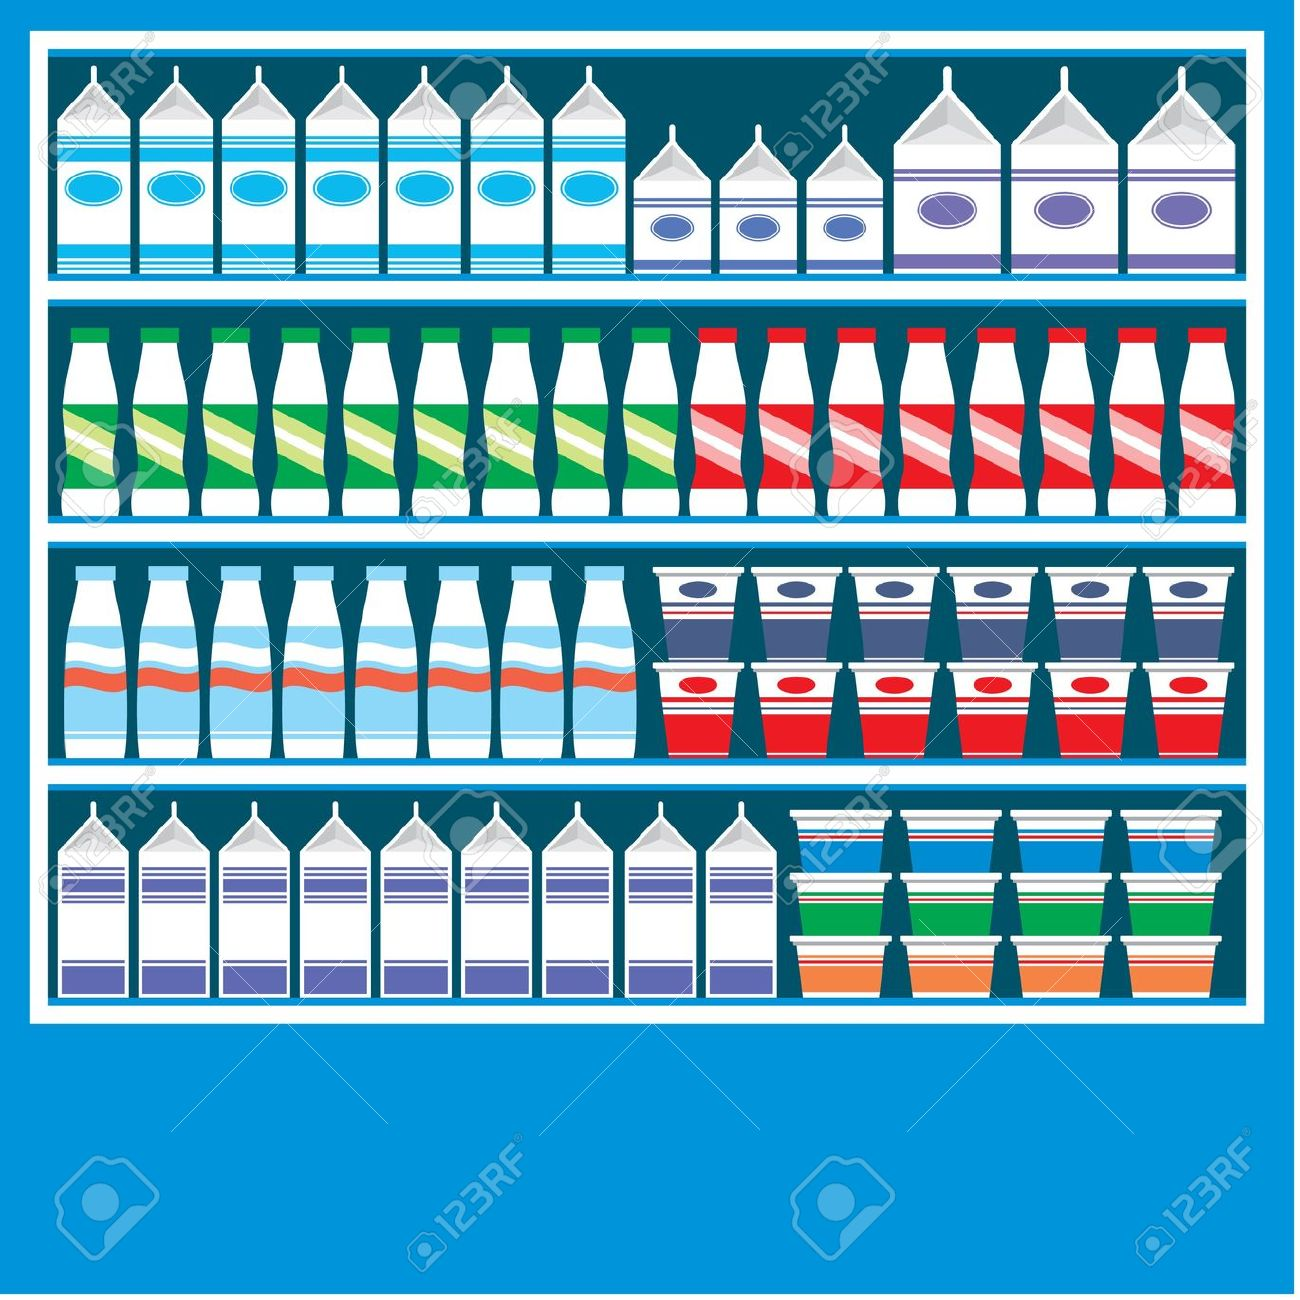 Supermarket Shelves With Dairy Products Royalty Free Cliparts.